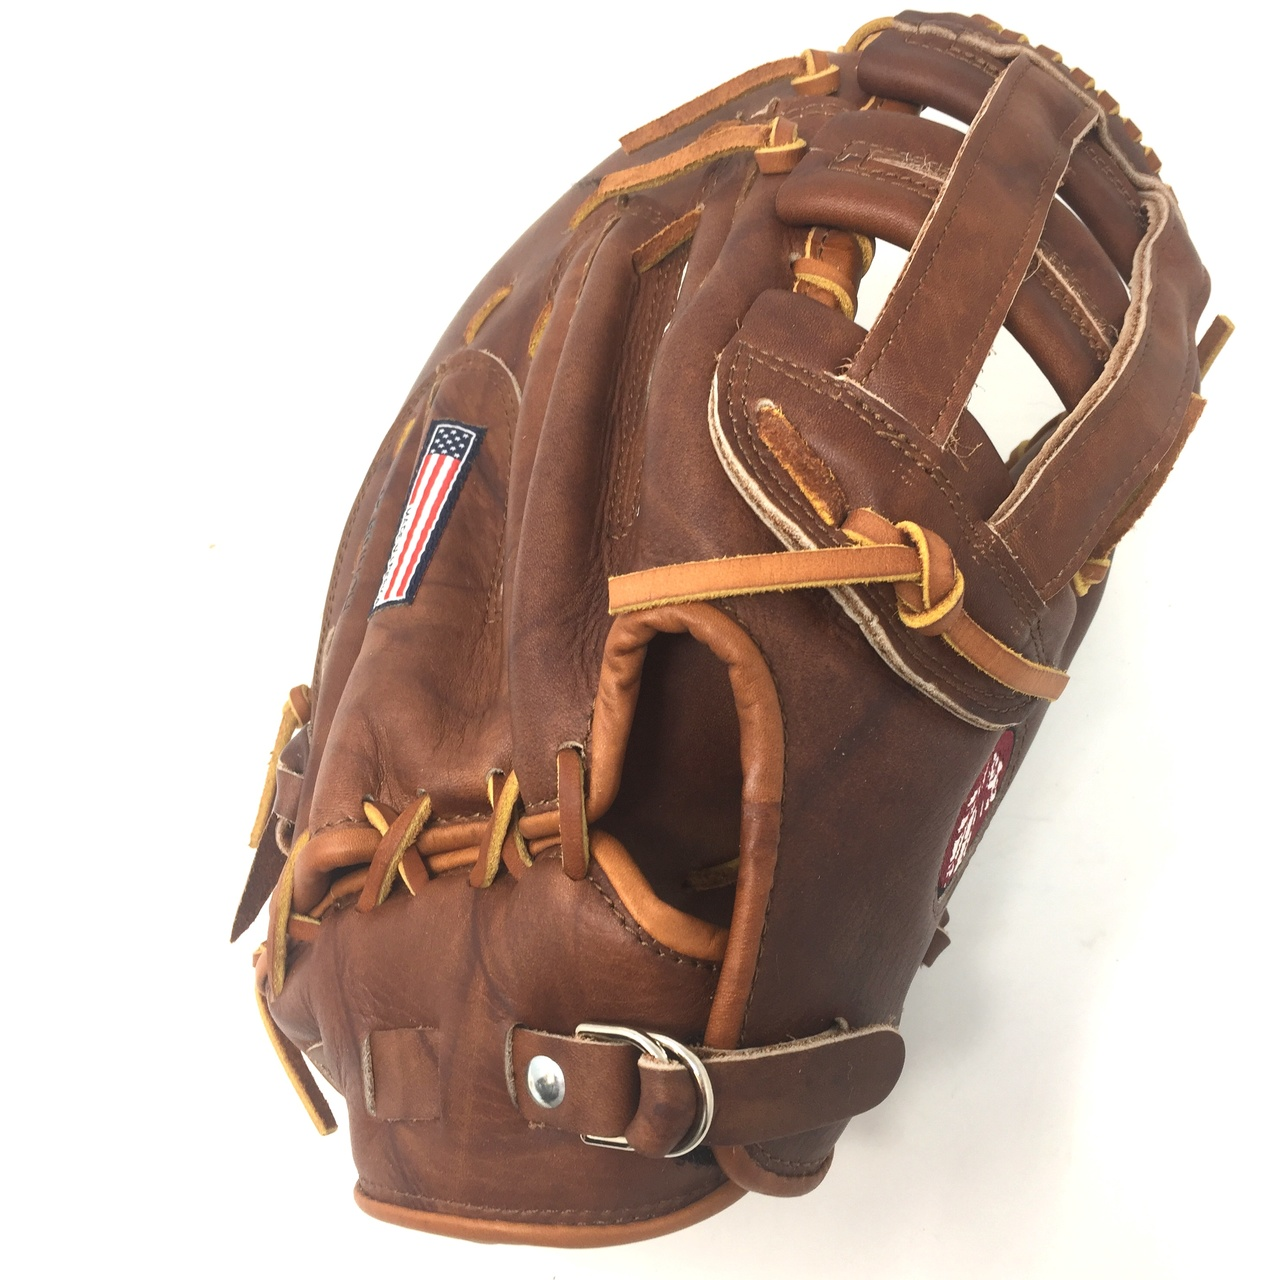 nokona-wb-1250h-12-5-h-web-walnut-baseball-first-base-mitt-right-handed-throw WB-1250H-Right Handed Throw Nokona 808808133407 Nokona WB-1250H 12.5 H Web Walnut Baseball First Base Mitt Right